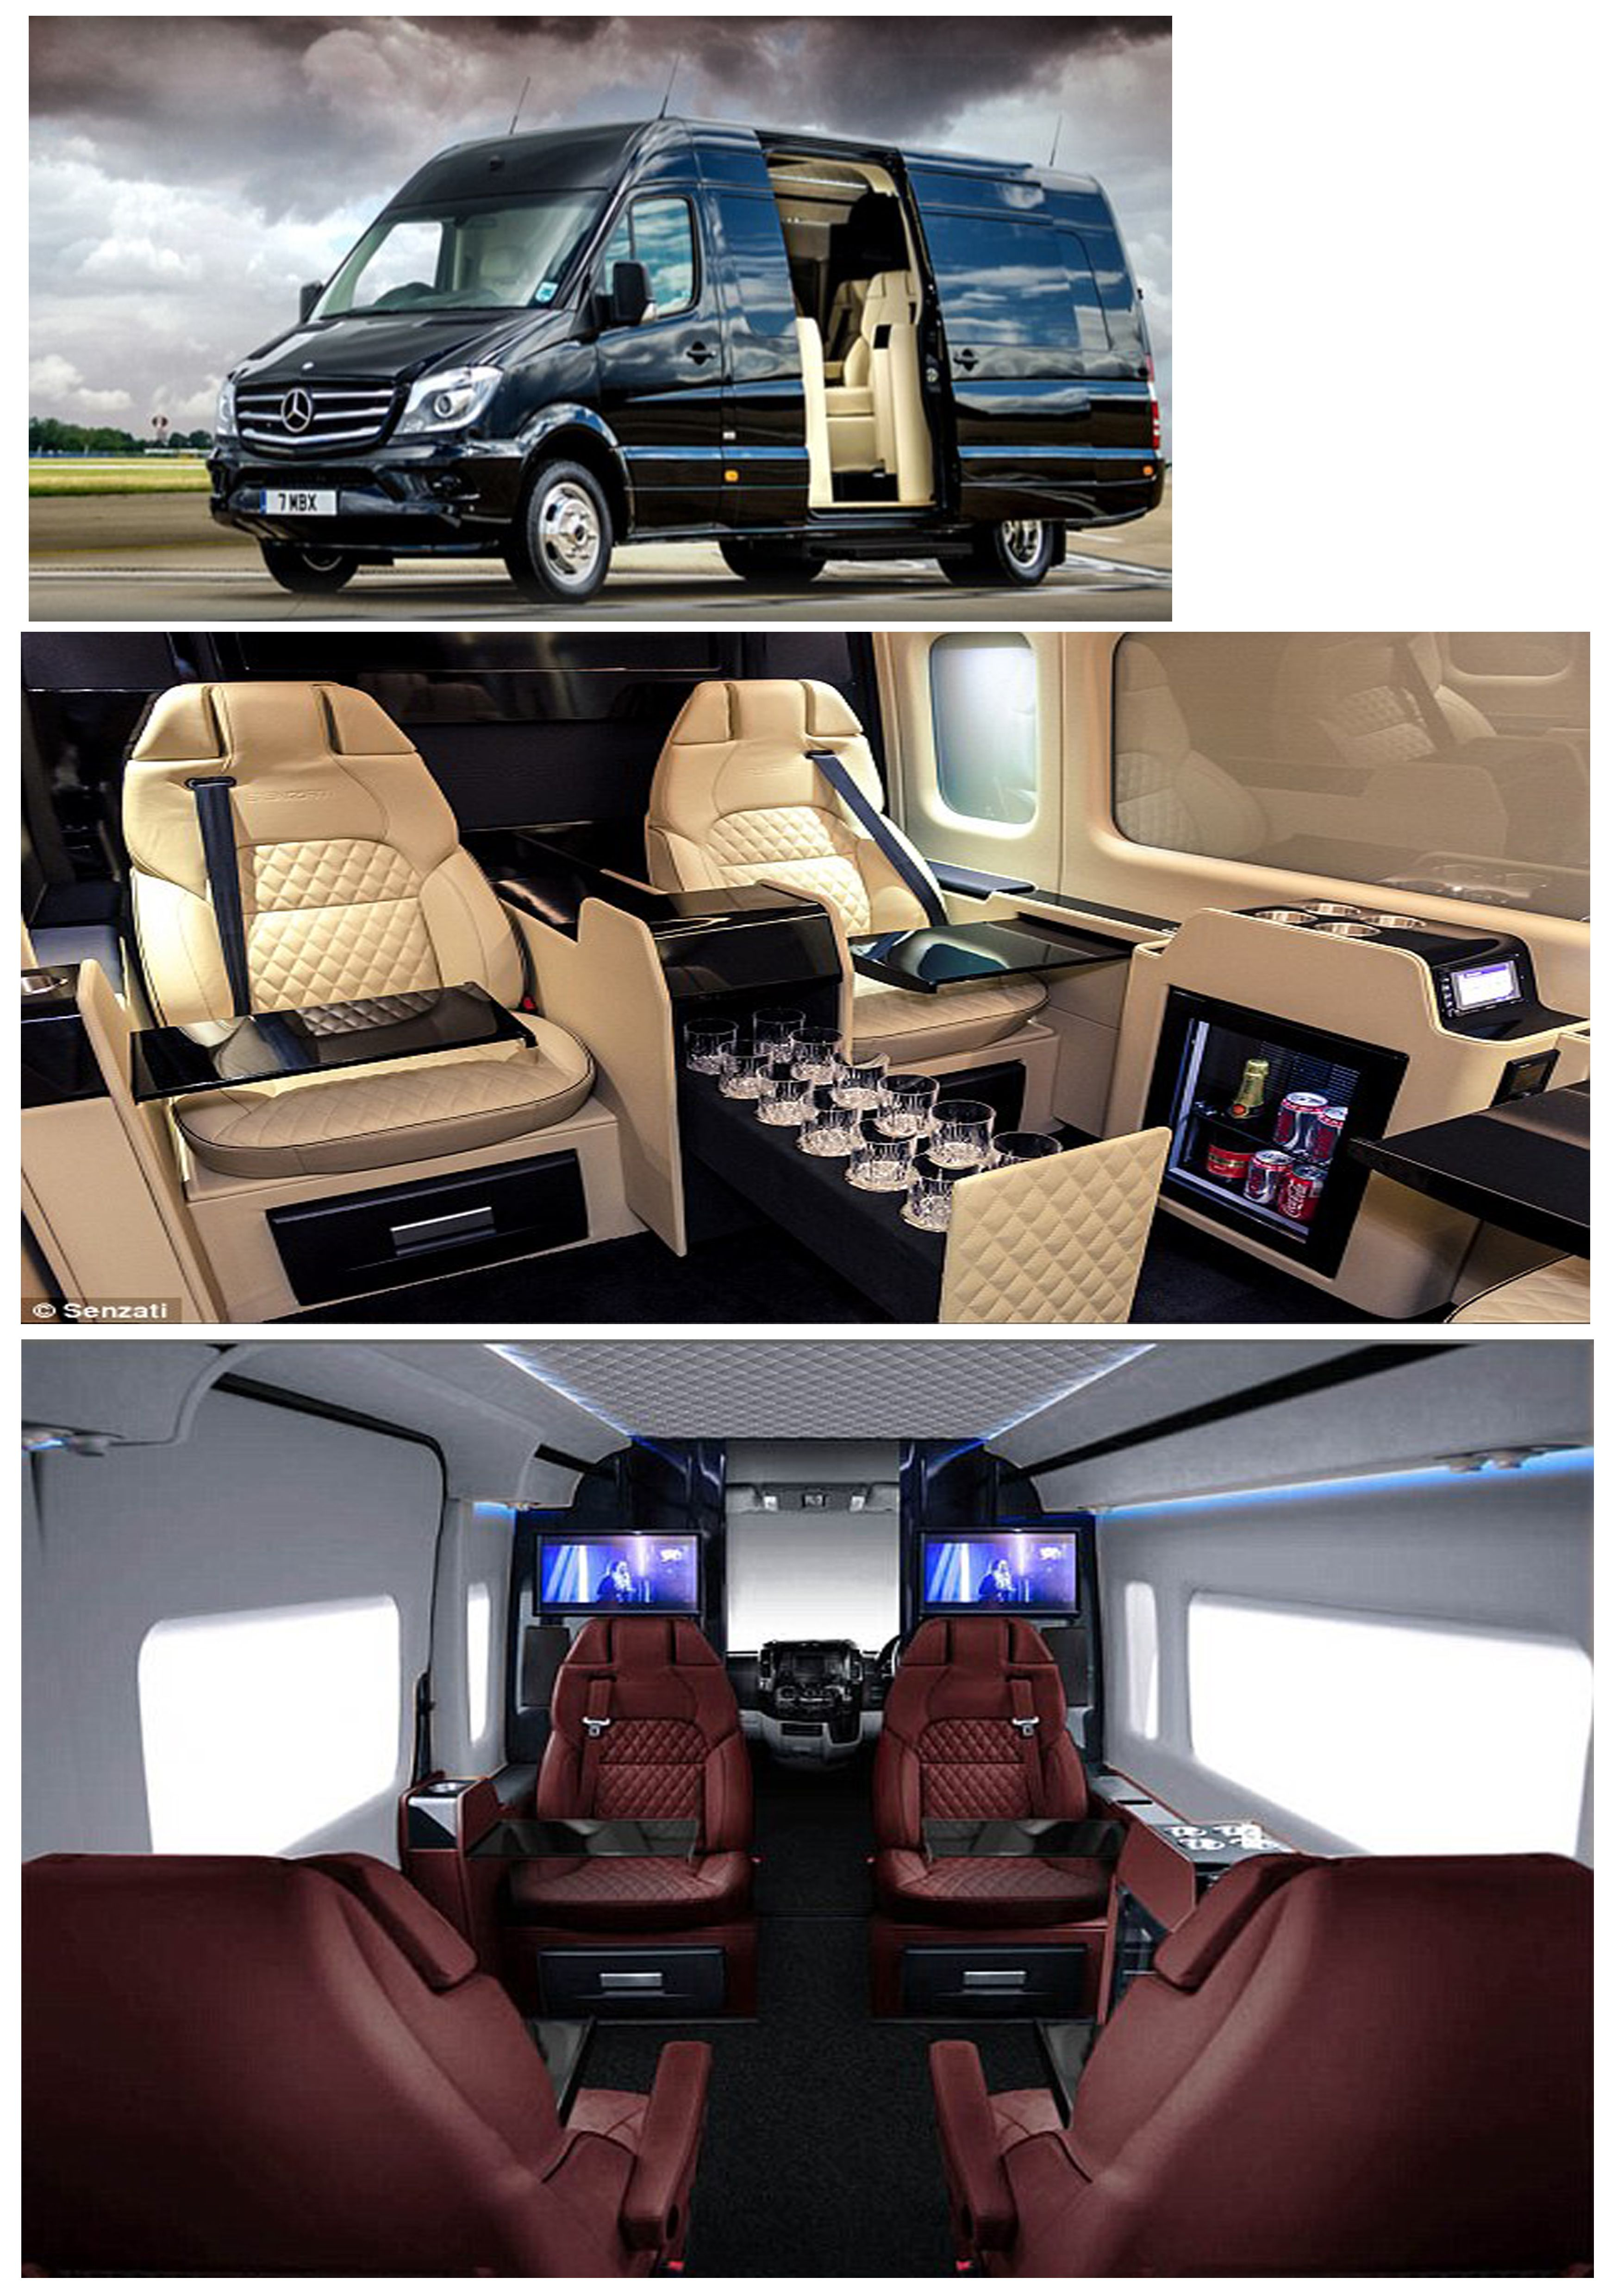 Senzati jet sprinter is a luxuriously modified mercedes sprinter van